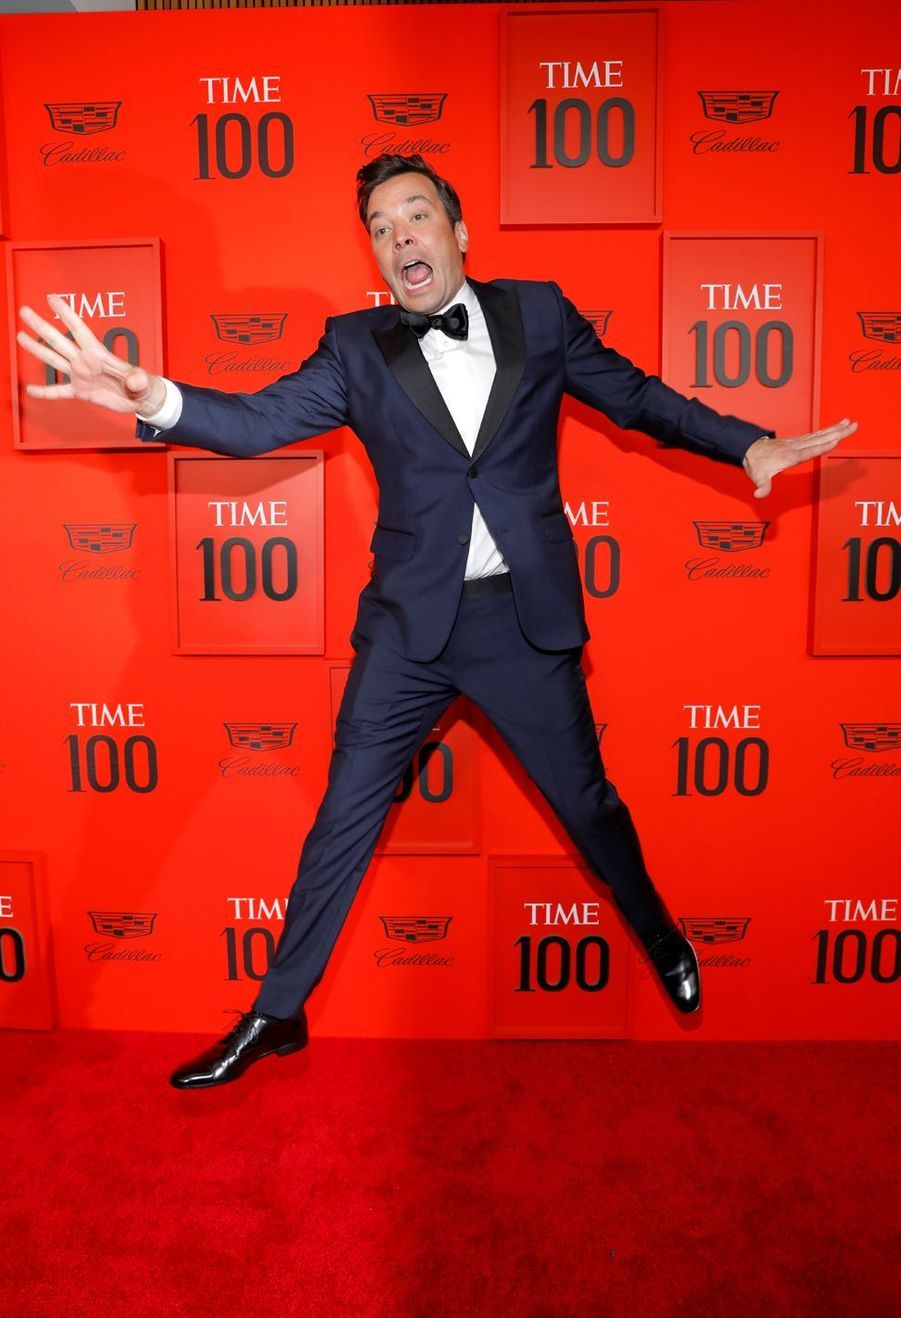 Jimmy Fallon au Time 100 Gala à New York le 23 avril 2019